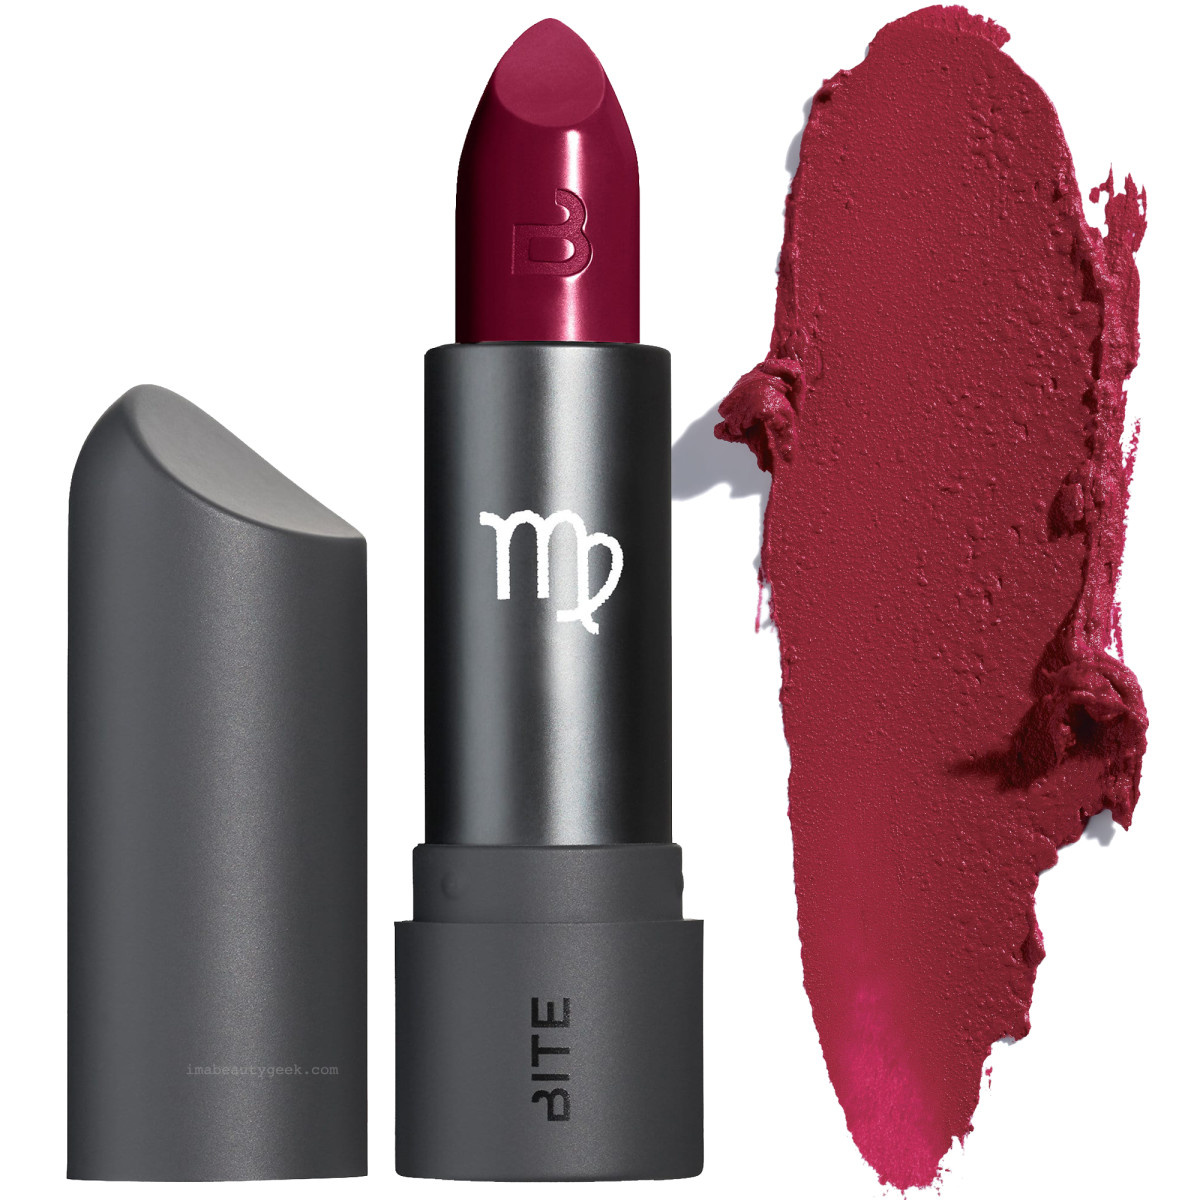 Bite Beauty Astrology Amuse Bouche Lipstick – Virgo